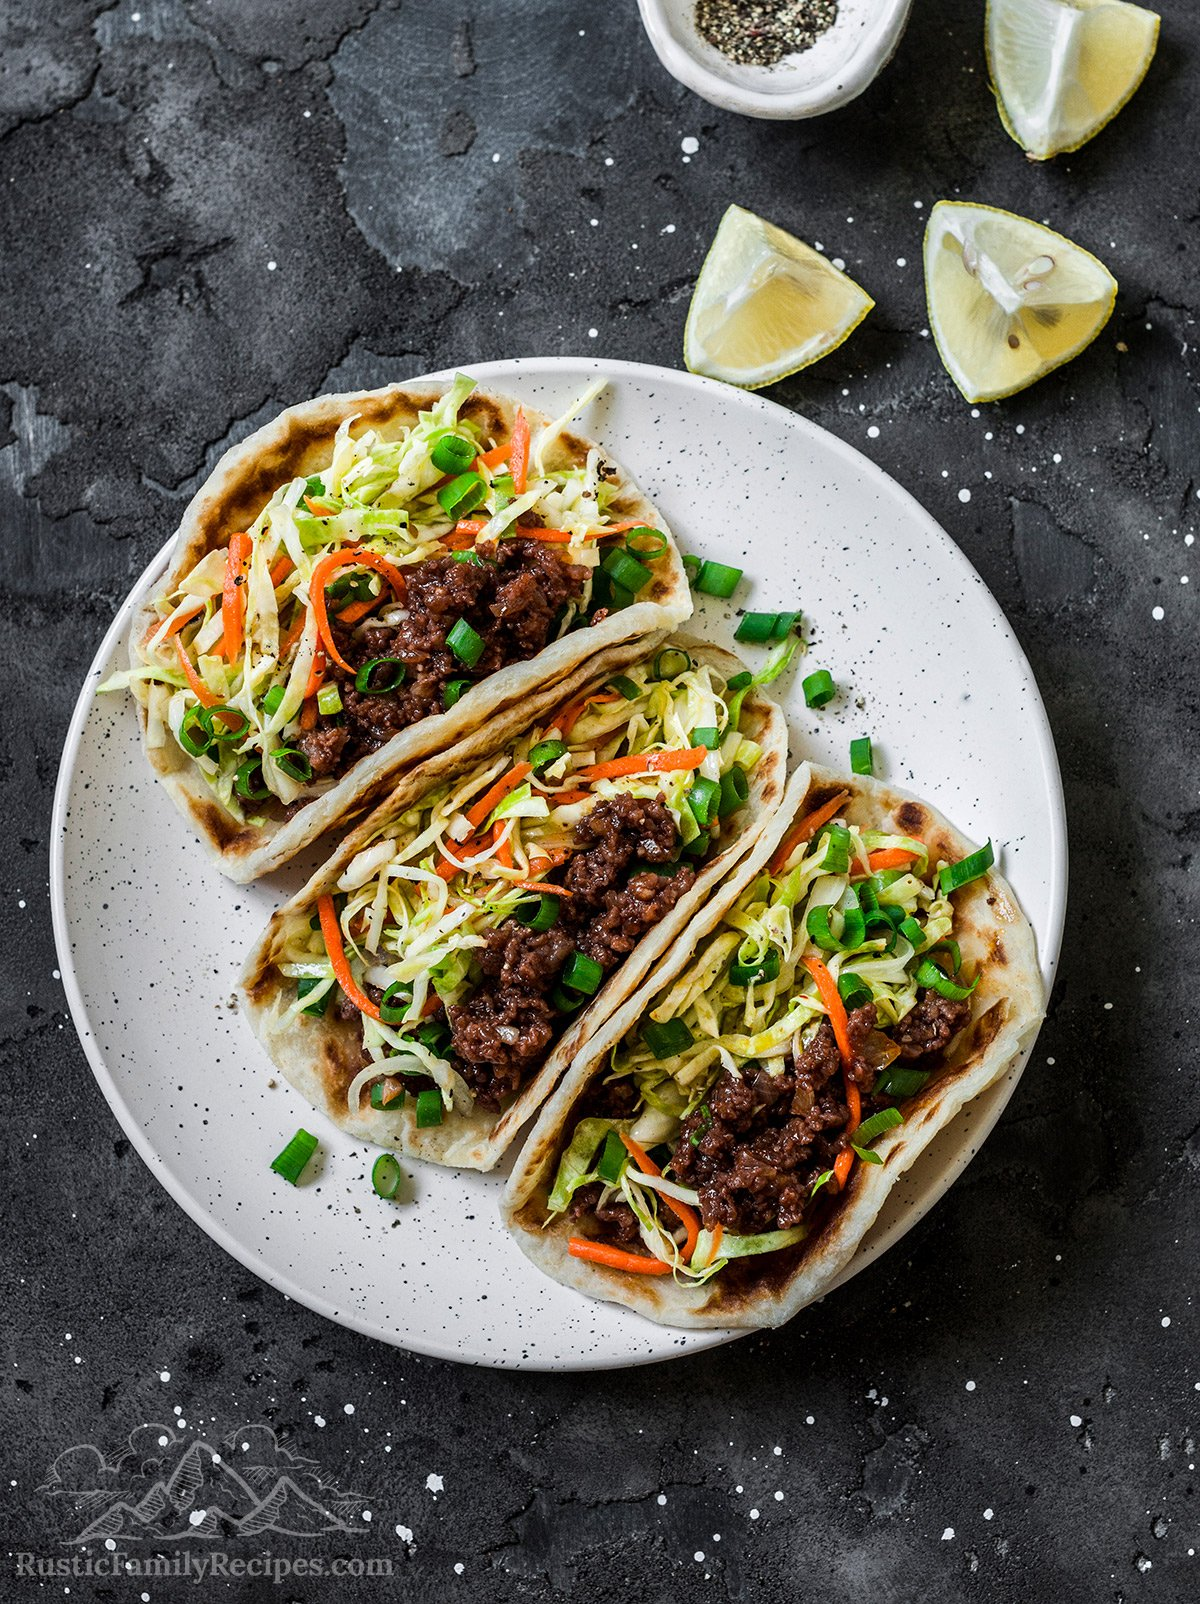 A white plate with three ground beef tacos